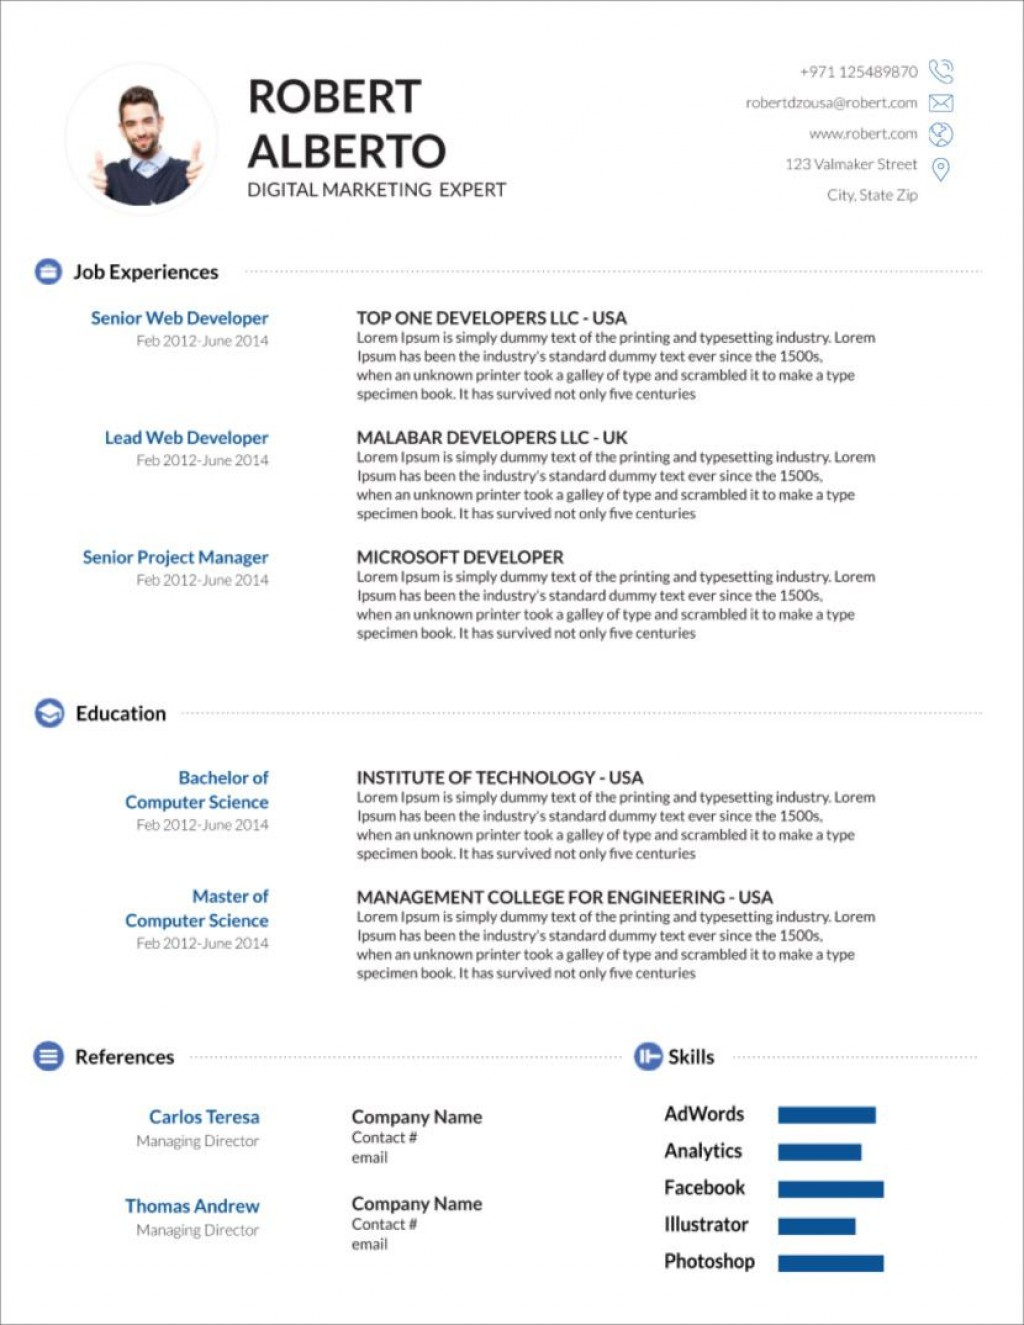 008 Fascinating Resume Layout Microsoft Word 2007 Picture  Template Cv Free DownloadLarge